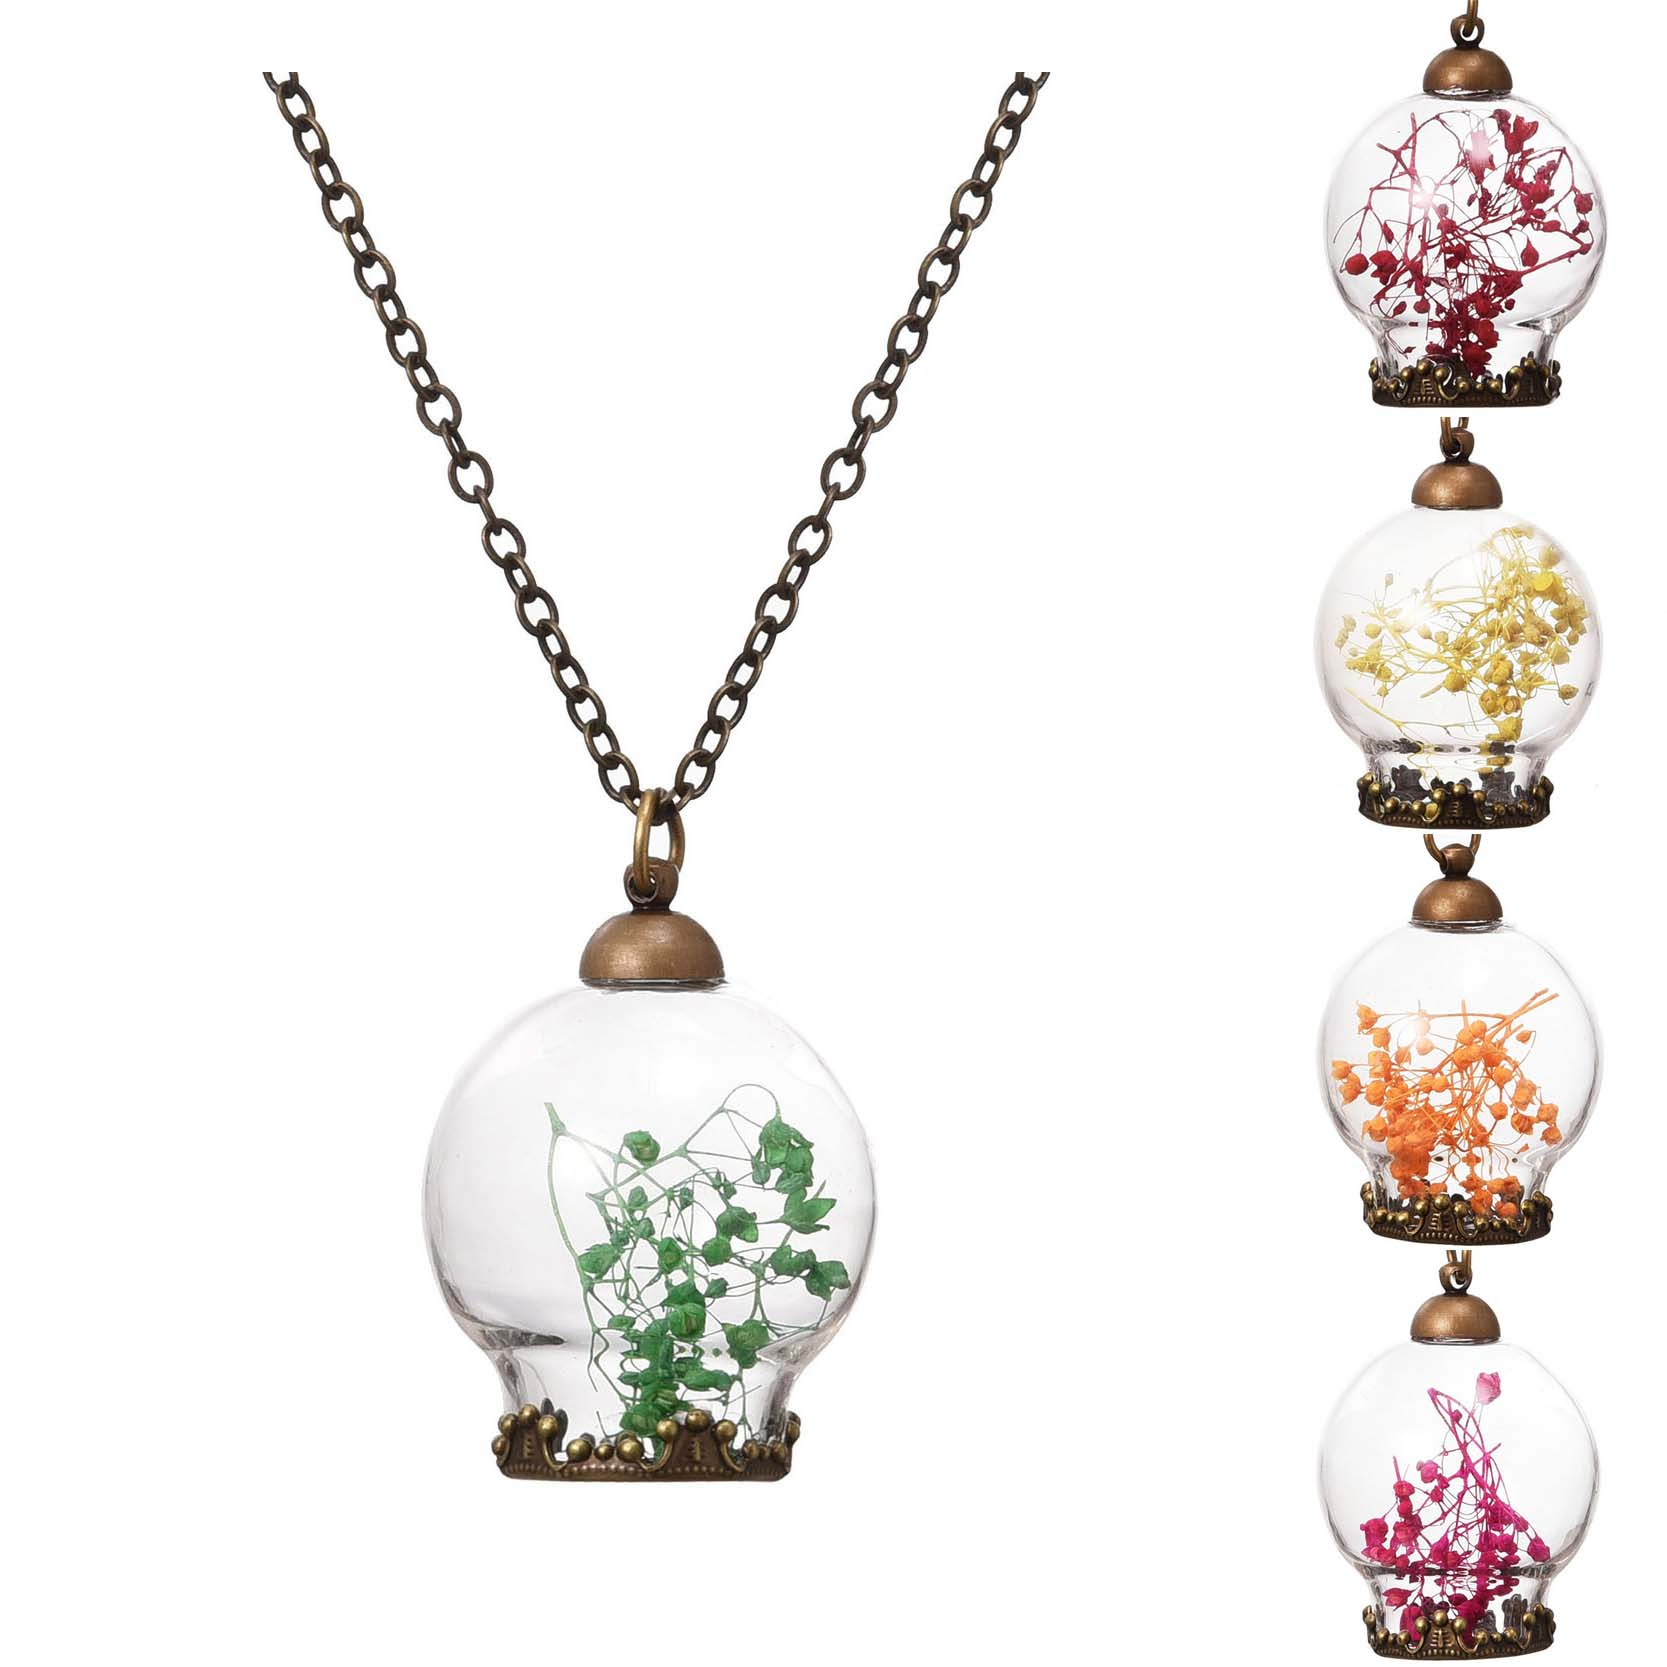 Wish Bottle Necklace Bronze Plated with Dried Flower Choker Pendant Neklace for Women Wedding